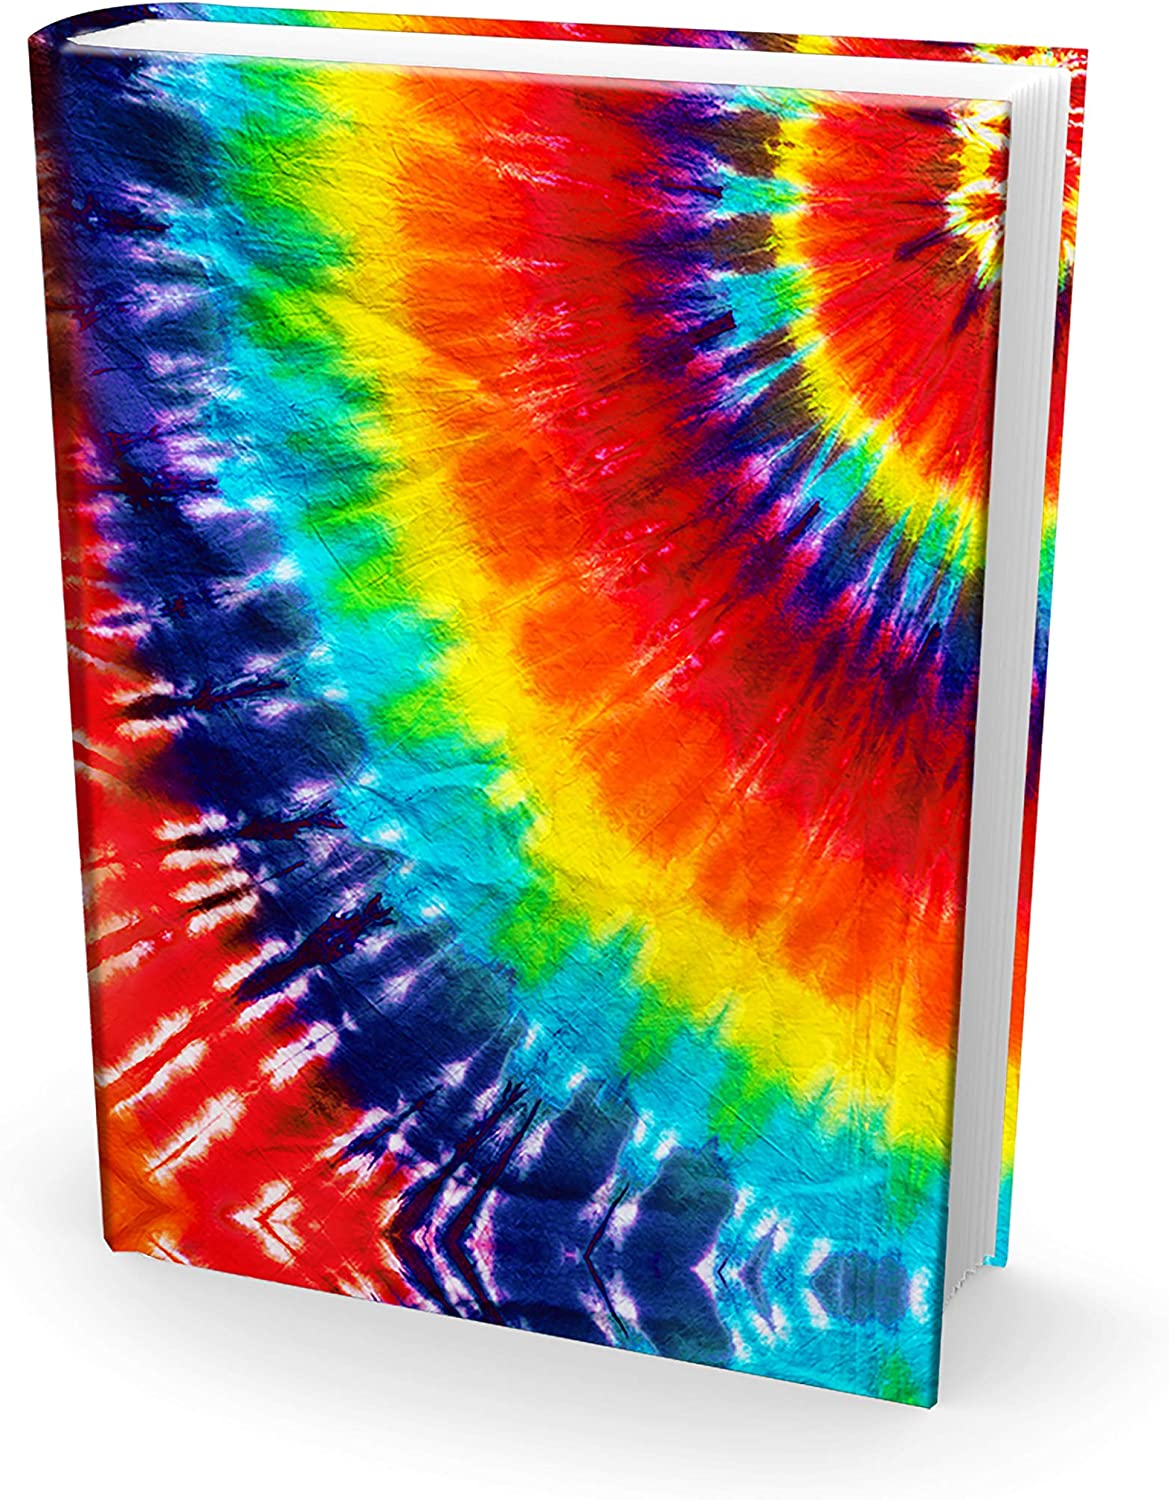 Perfect Fun Reusable Book Covers 6 Pk Easy Apply Washable Designs for Girls Best 8x10 Textbook Jackets for Back to School Kids and Teens Boys Stretchable to Fit Most Medium Hardcover Books